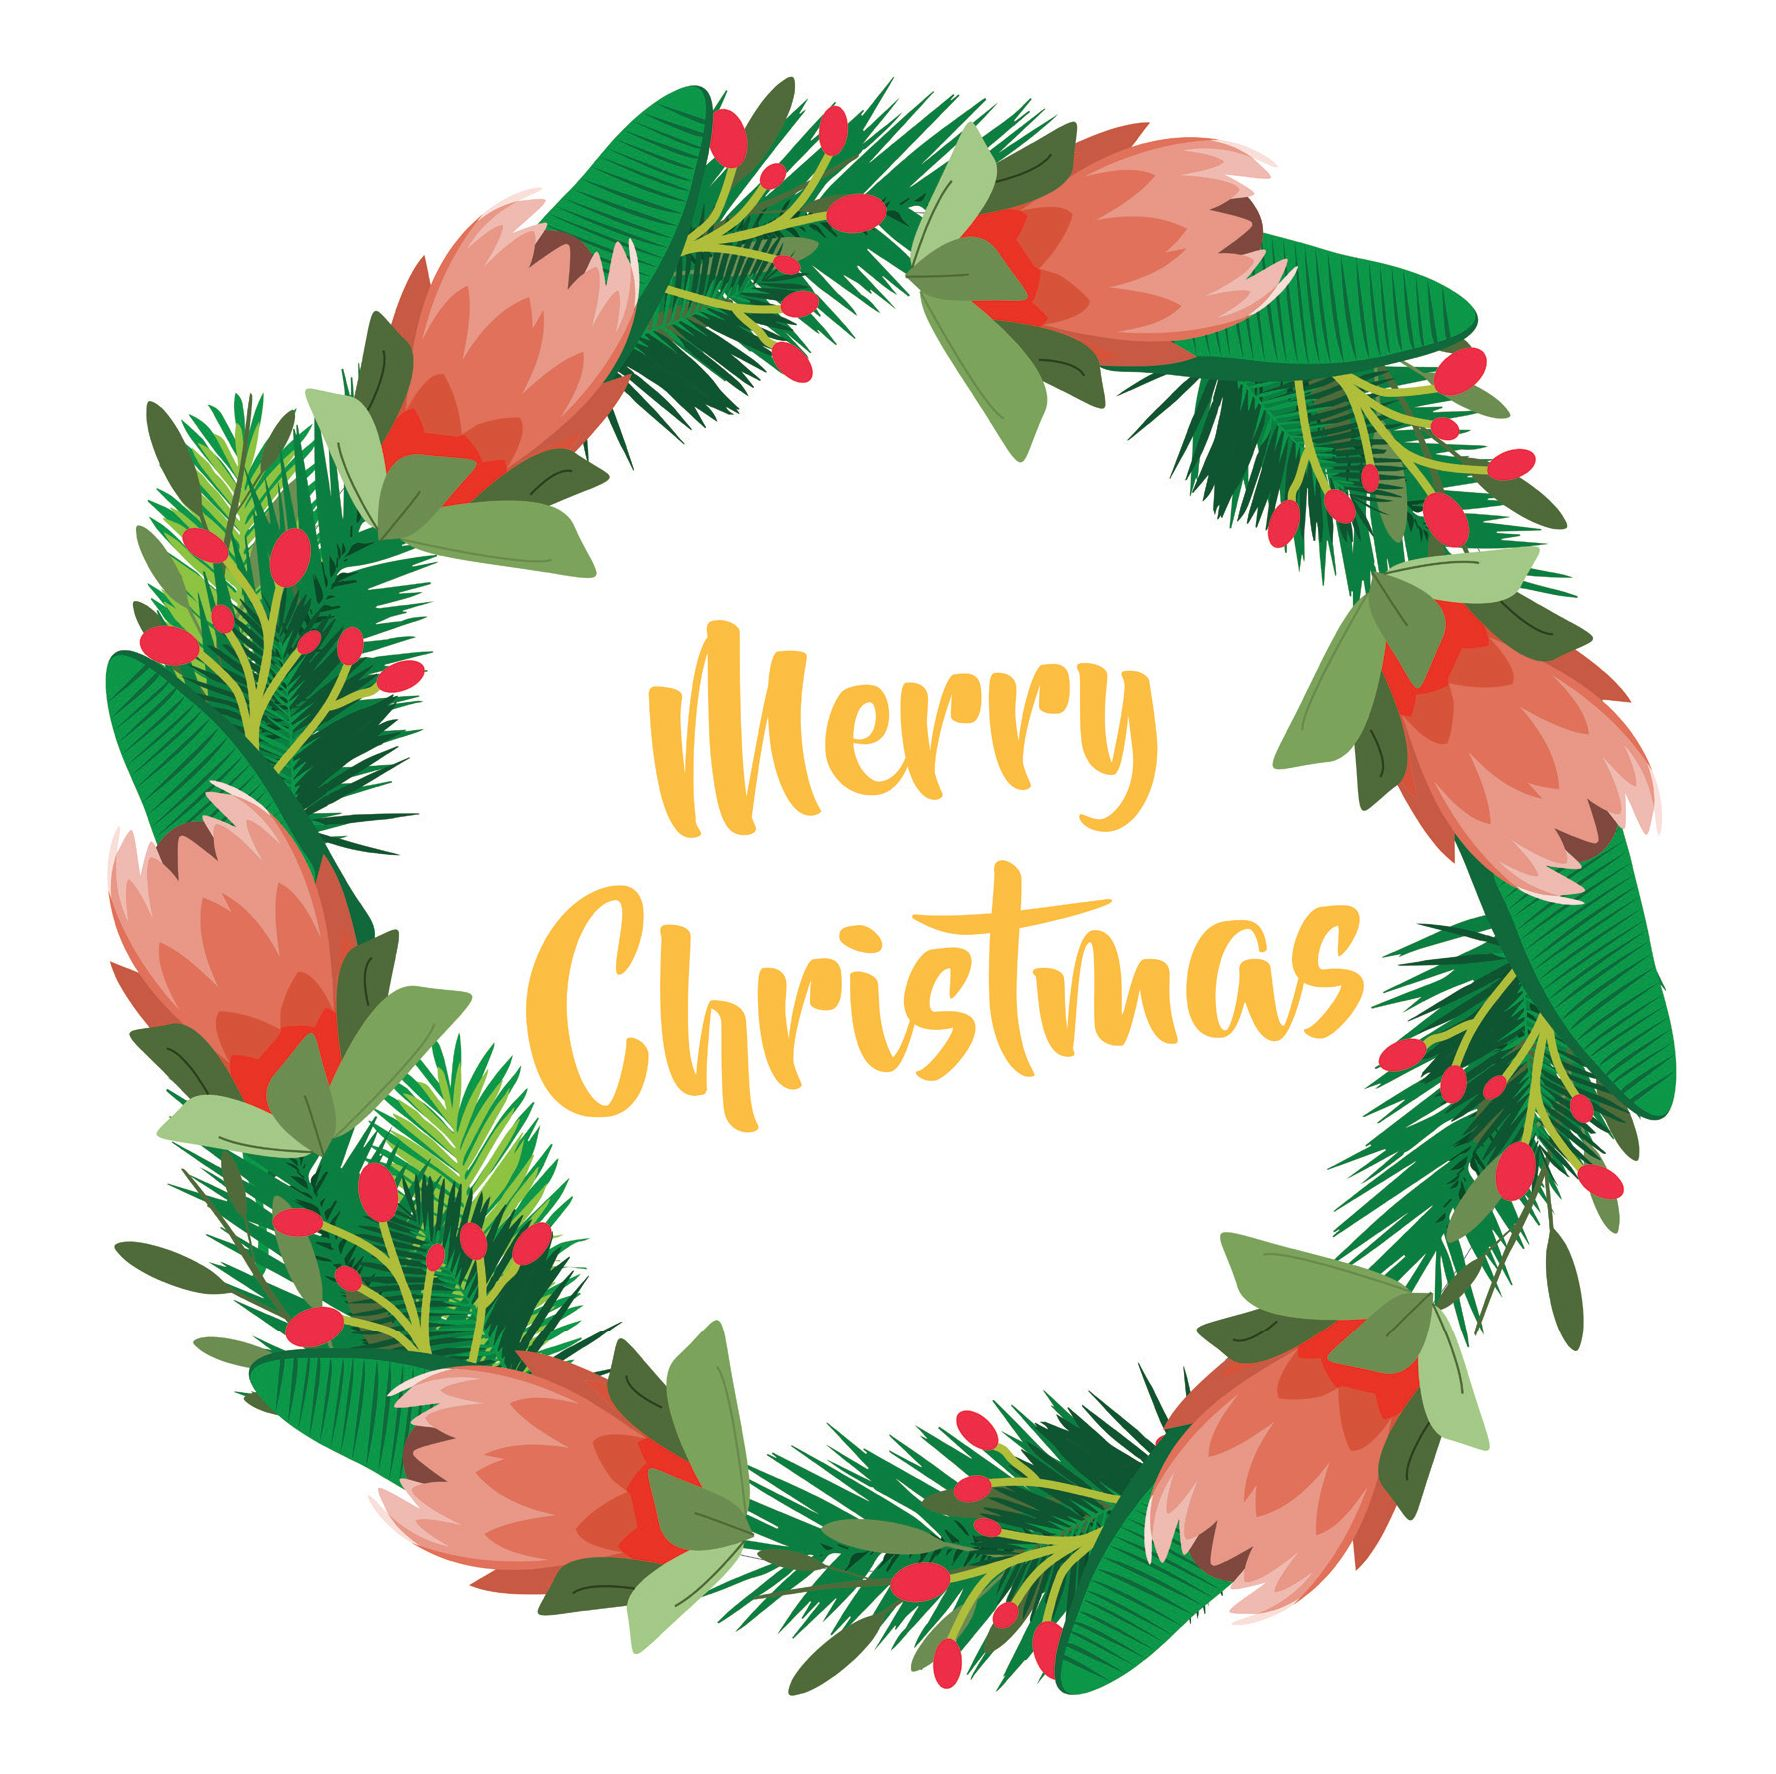 Merry Christmas | South African Greeting Cards | Pinterest ...